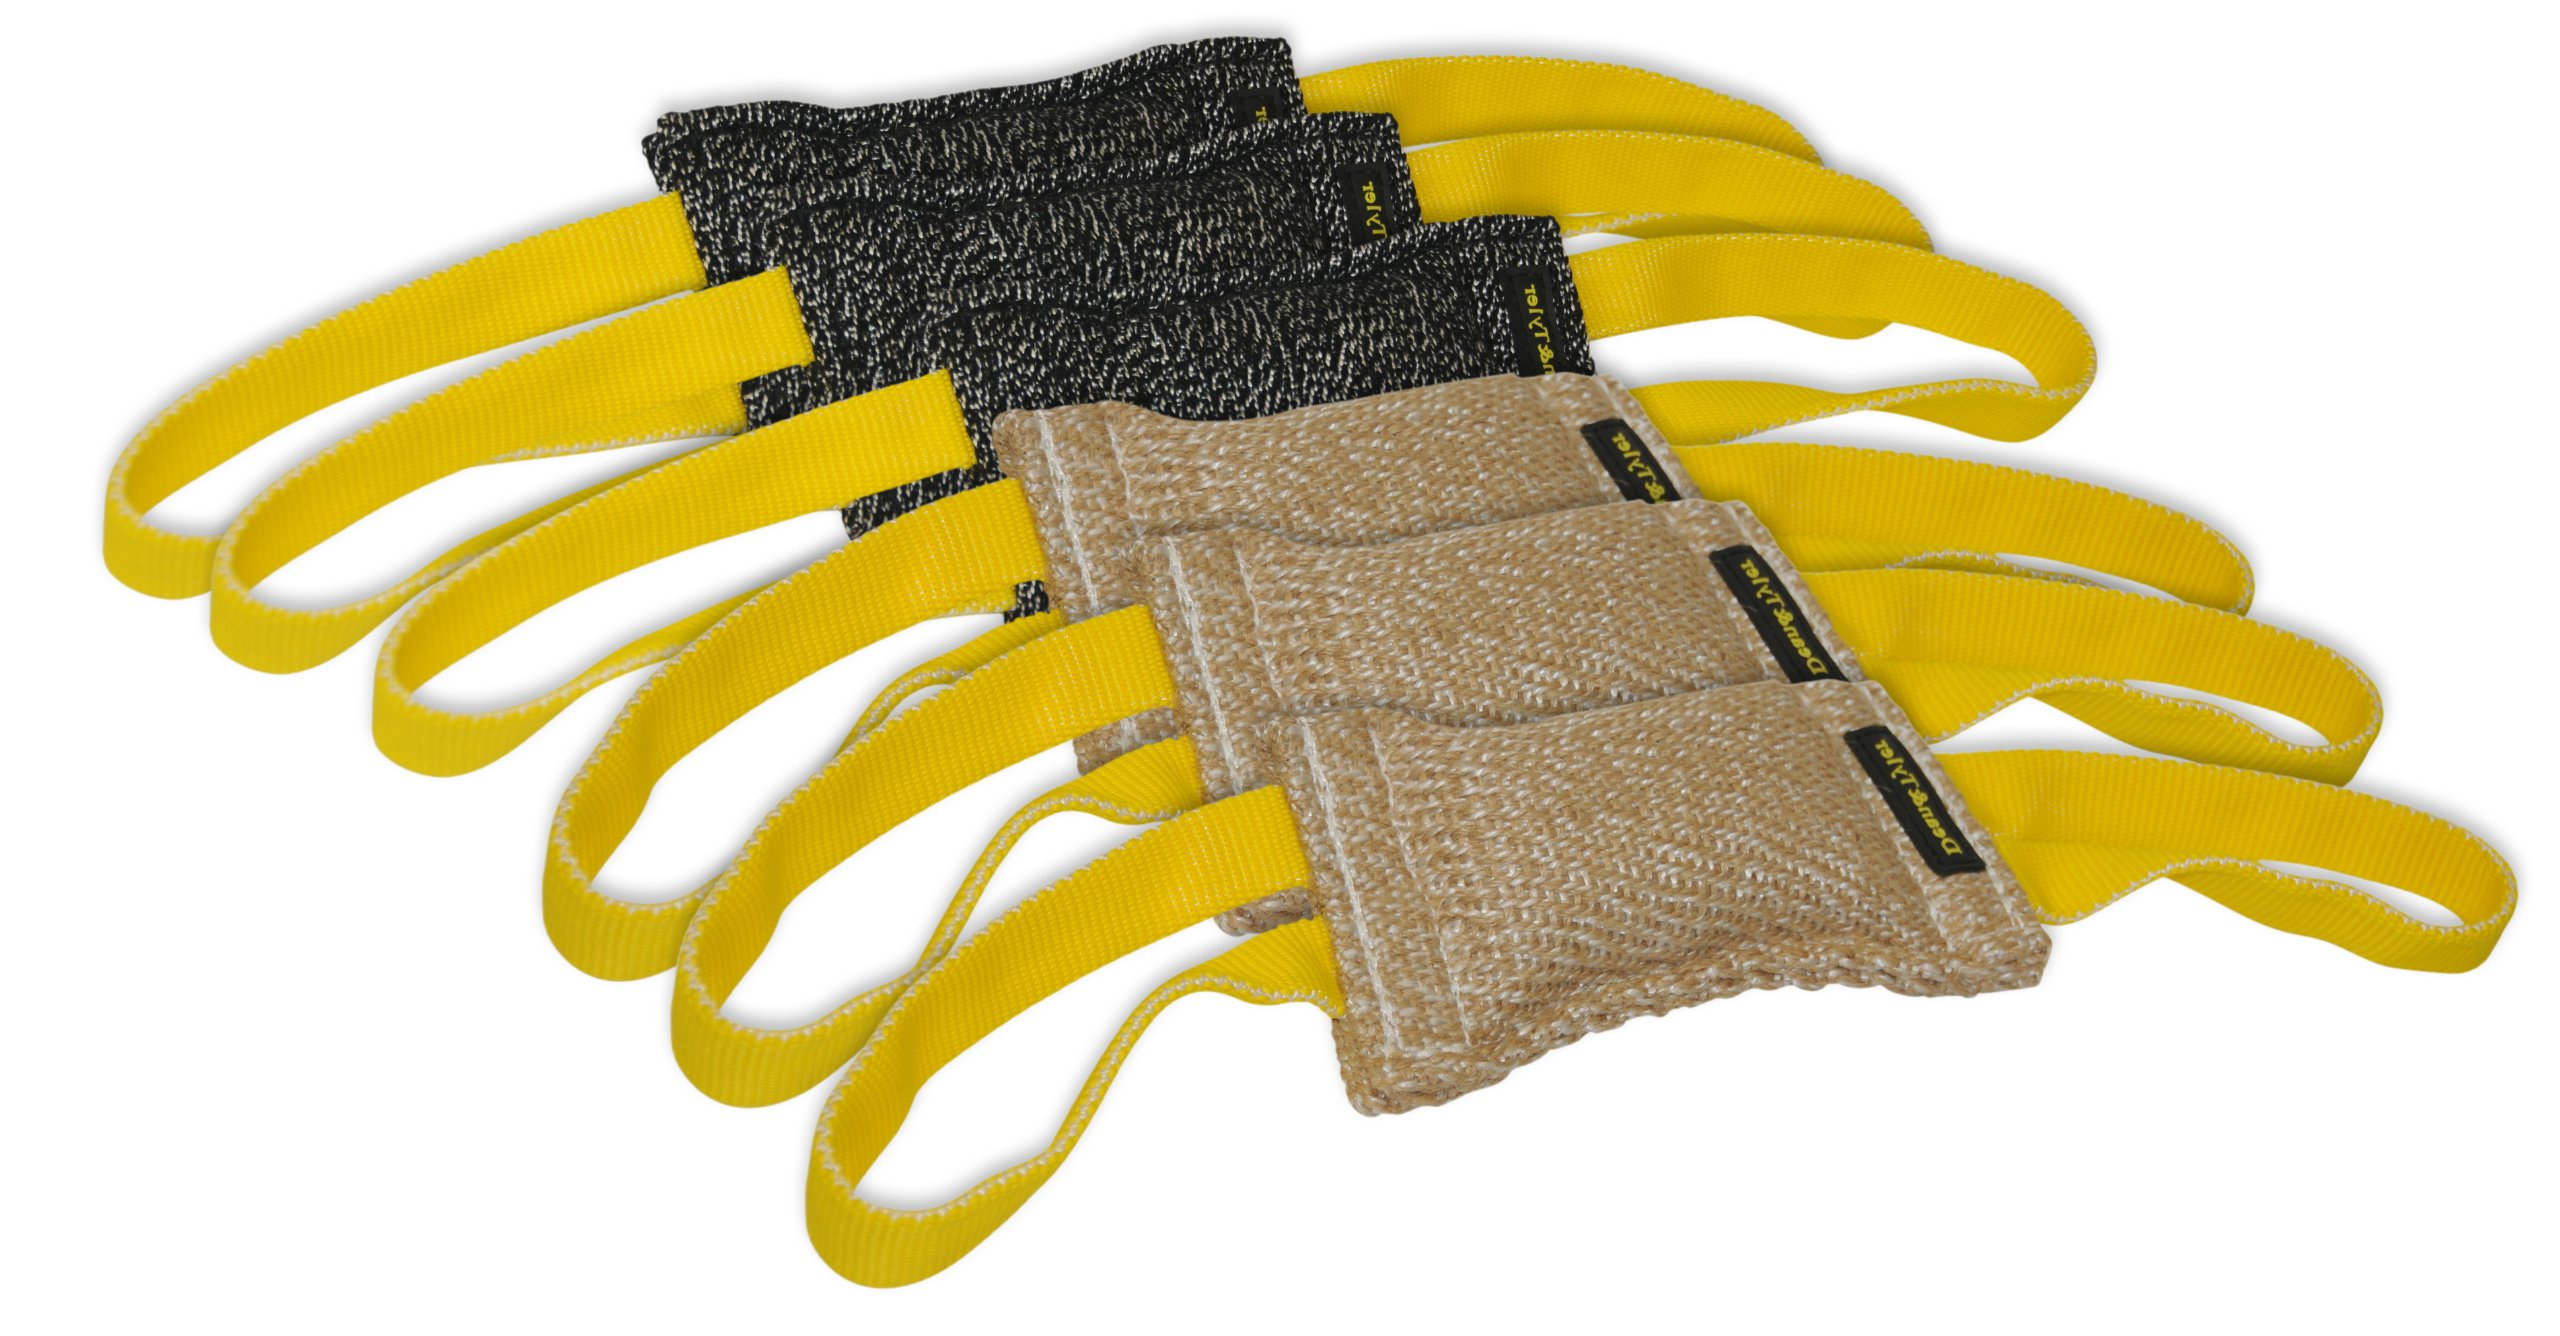 Dean & Tyler Bundle of 6 Tugs for Pets, 3-Jute and 3-French Linen, 8-Inch by 4-Inch